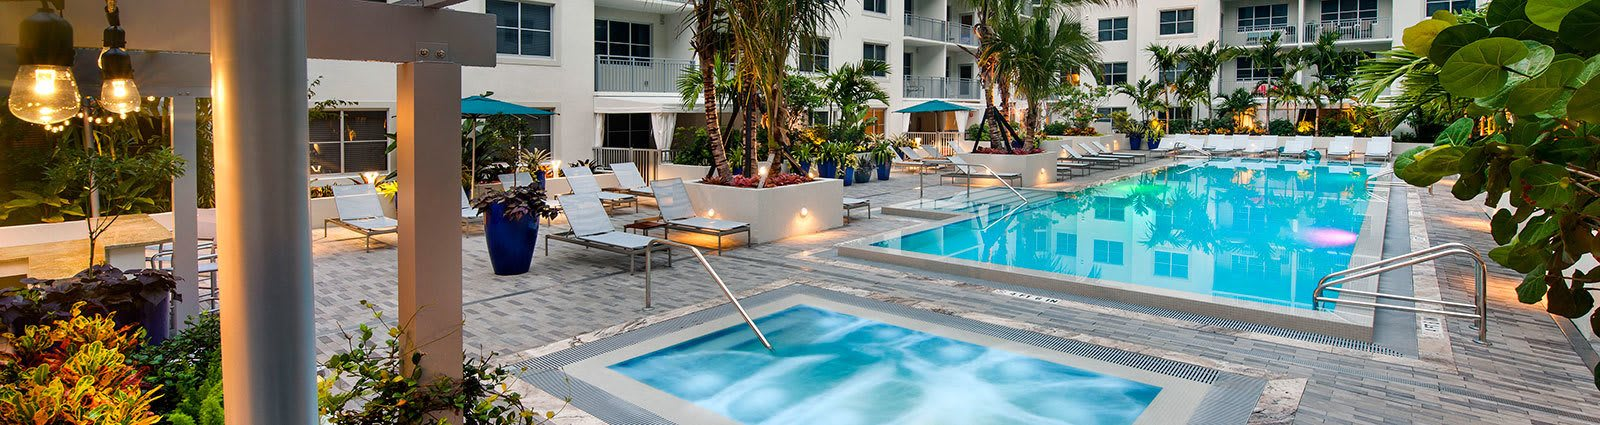 Contact Berkshire Lauderdale By The Sea for information about our apartments in Ft. Lauderdale